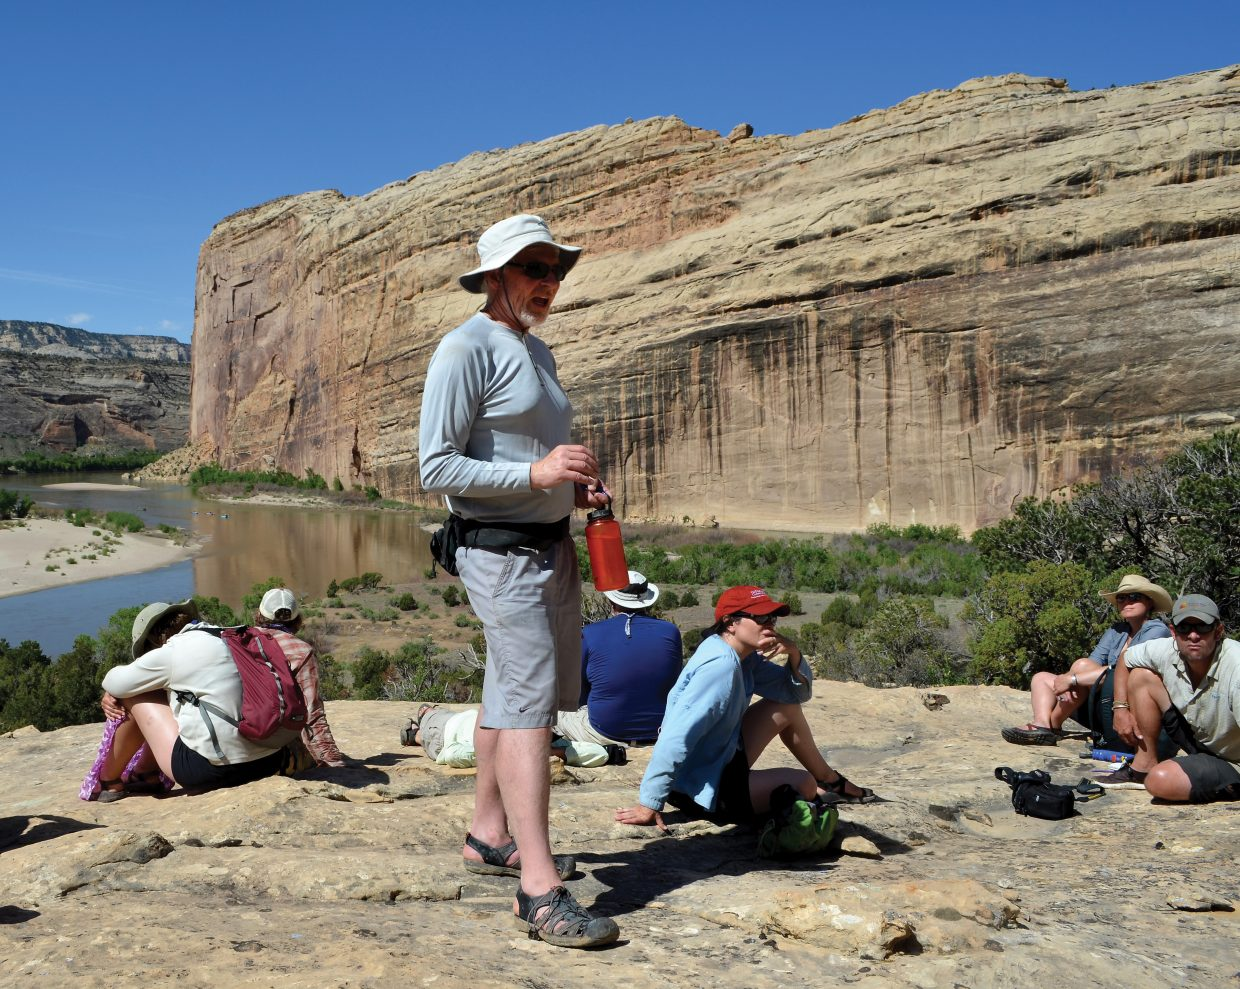 Eric Kuhn, general manager of the Colorado River District, explains the modern history of water politics affecting the Yampa River to a group of conservationists and policy makers near the confluence of the Yampa and Green rivers in Dinosaur National Monument in June 2013.